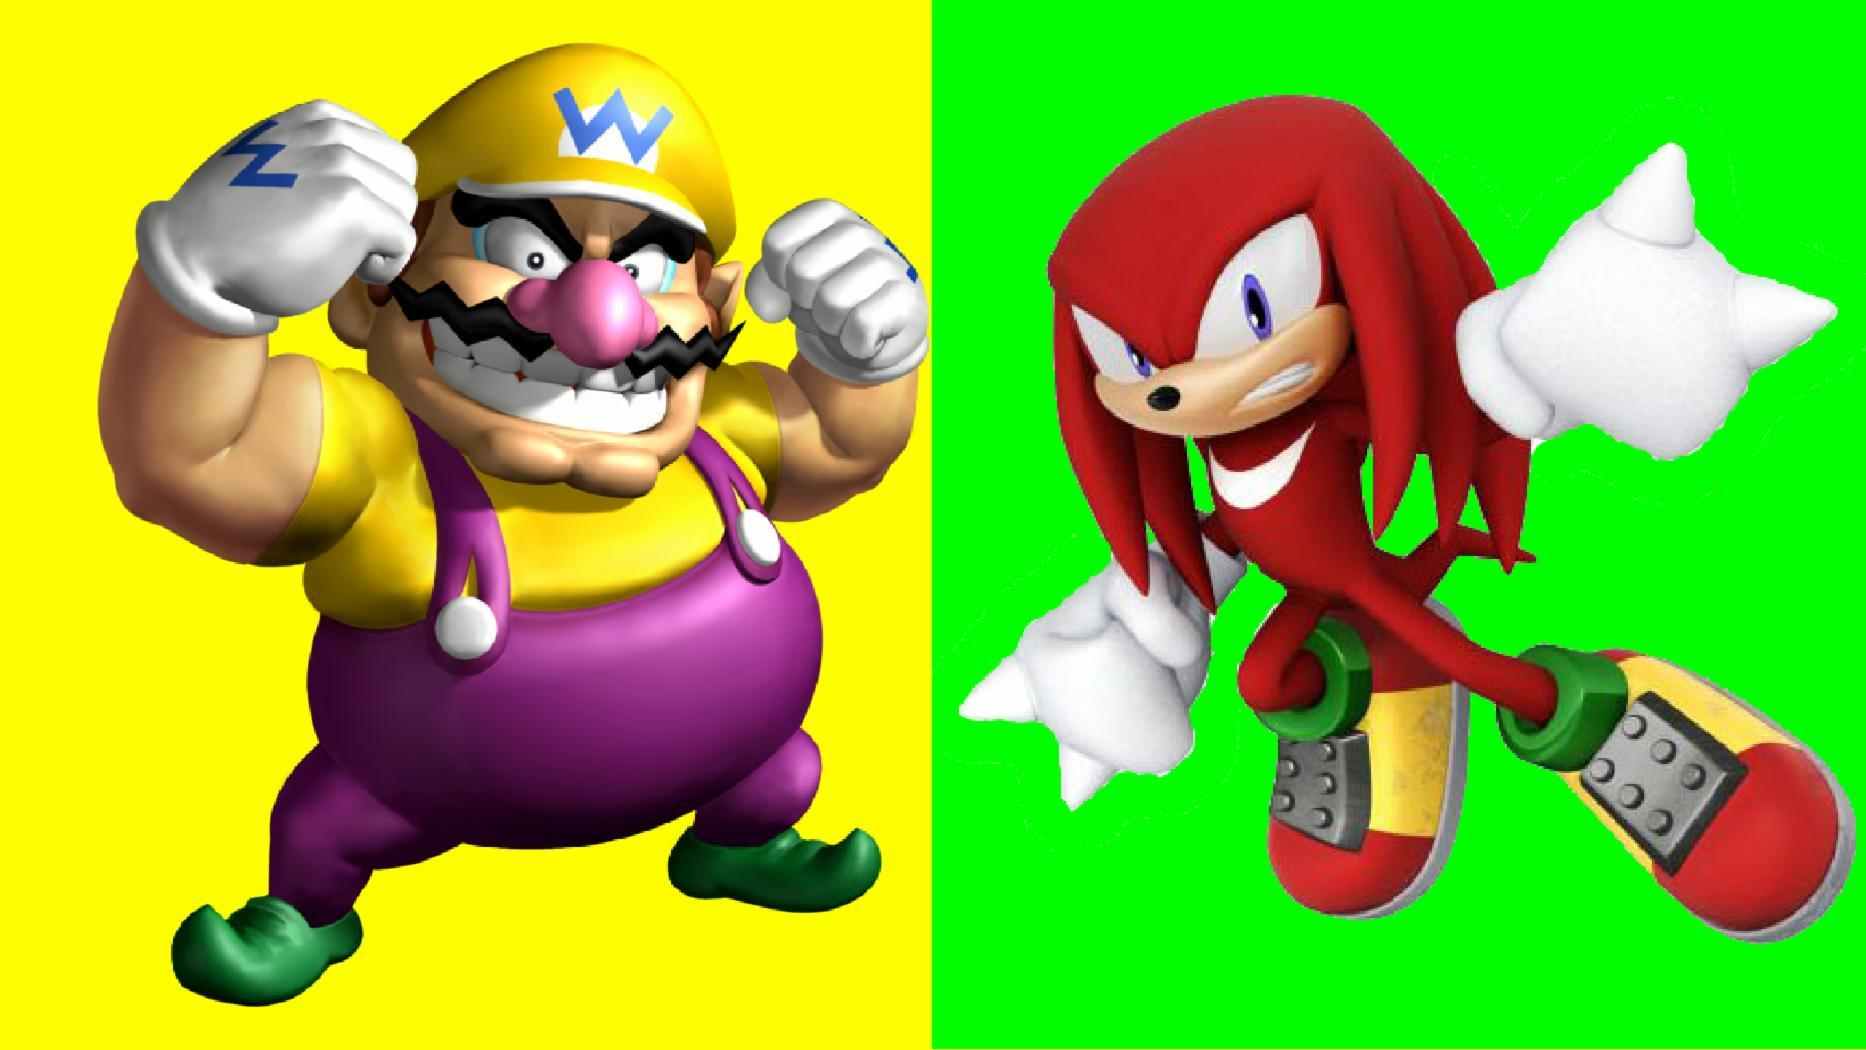 Wario vs Knuckles the Echidna